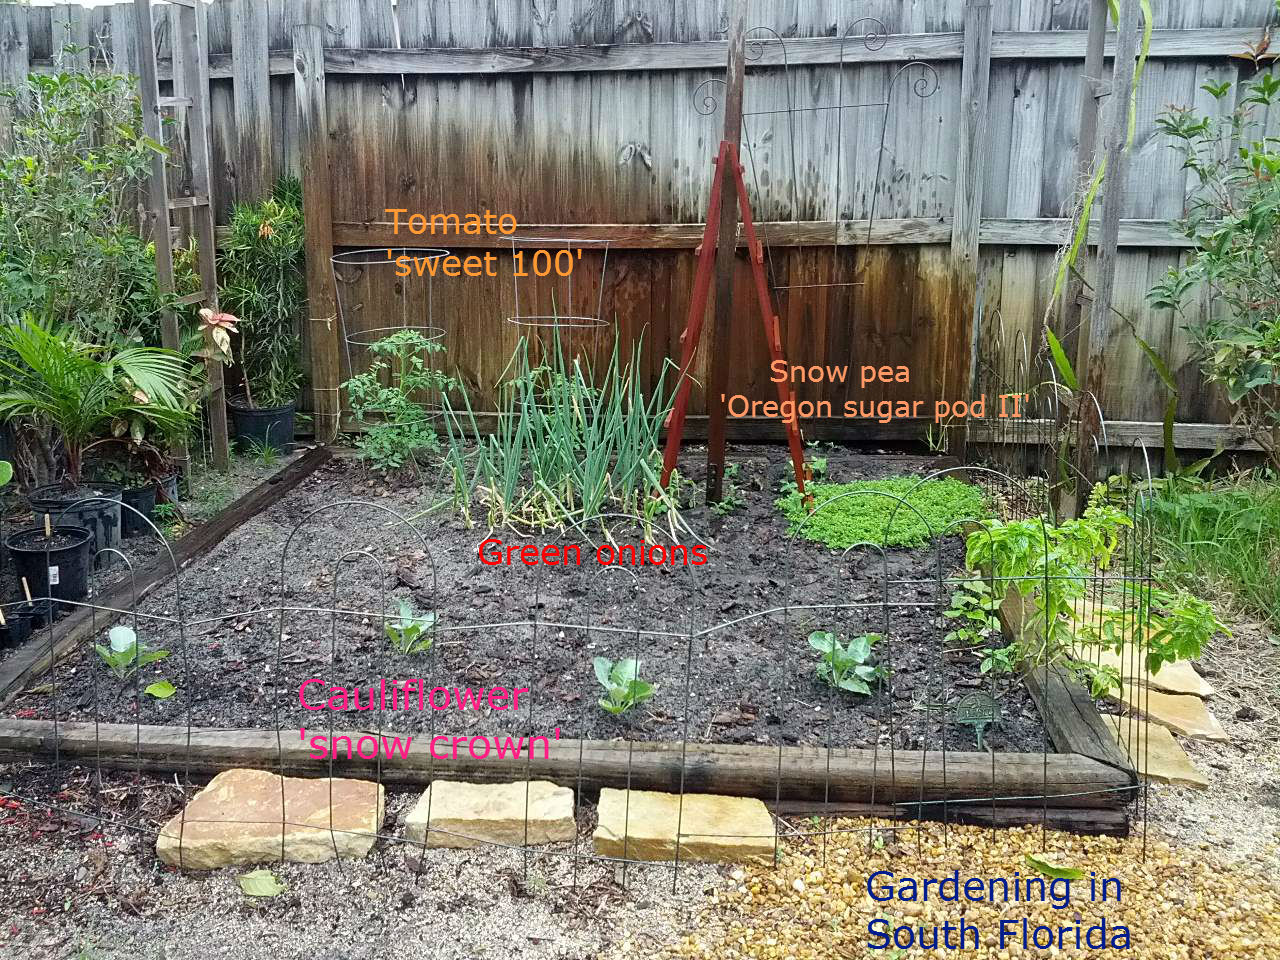 Gardening south florida style our 2013 vegetable garden - South florida vegetable gardening ...